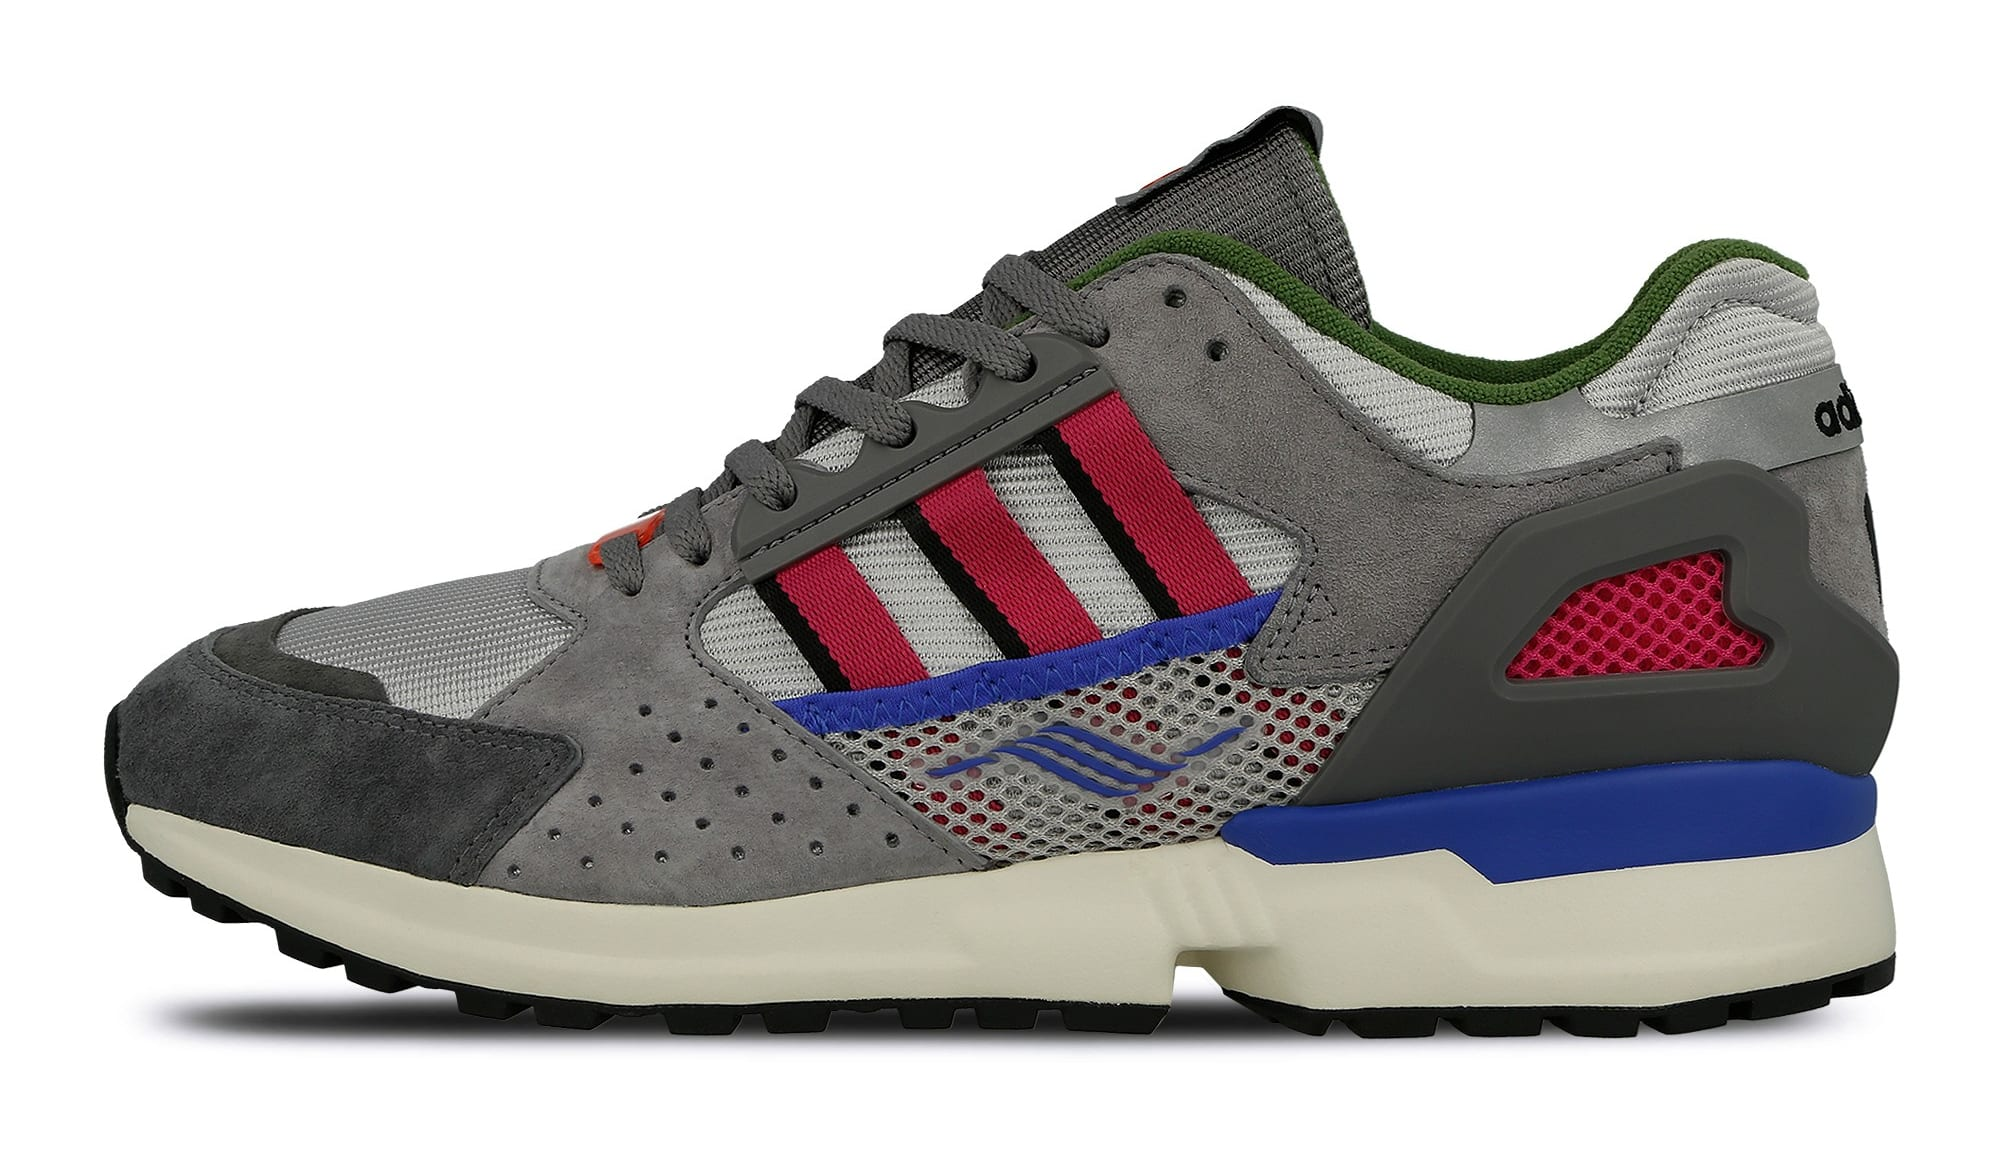 Overkill x Adidas ZX 10000C 'Game Overkill' G26252 (Lateral)